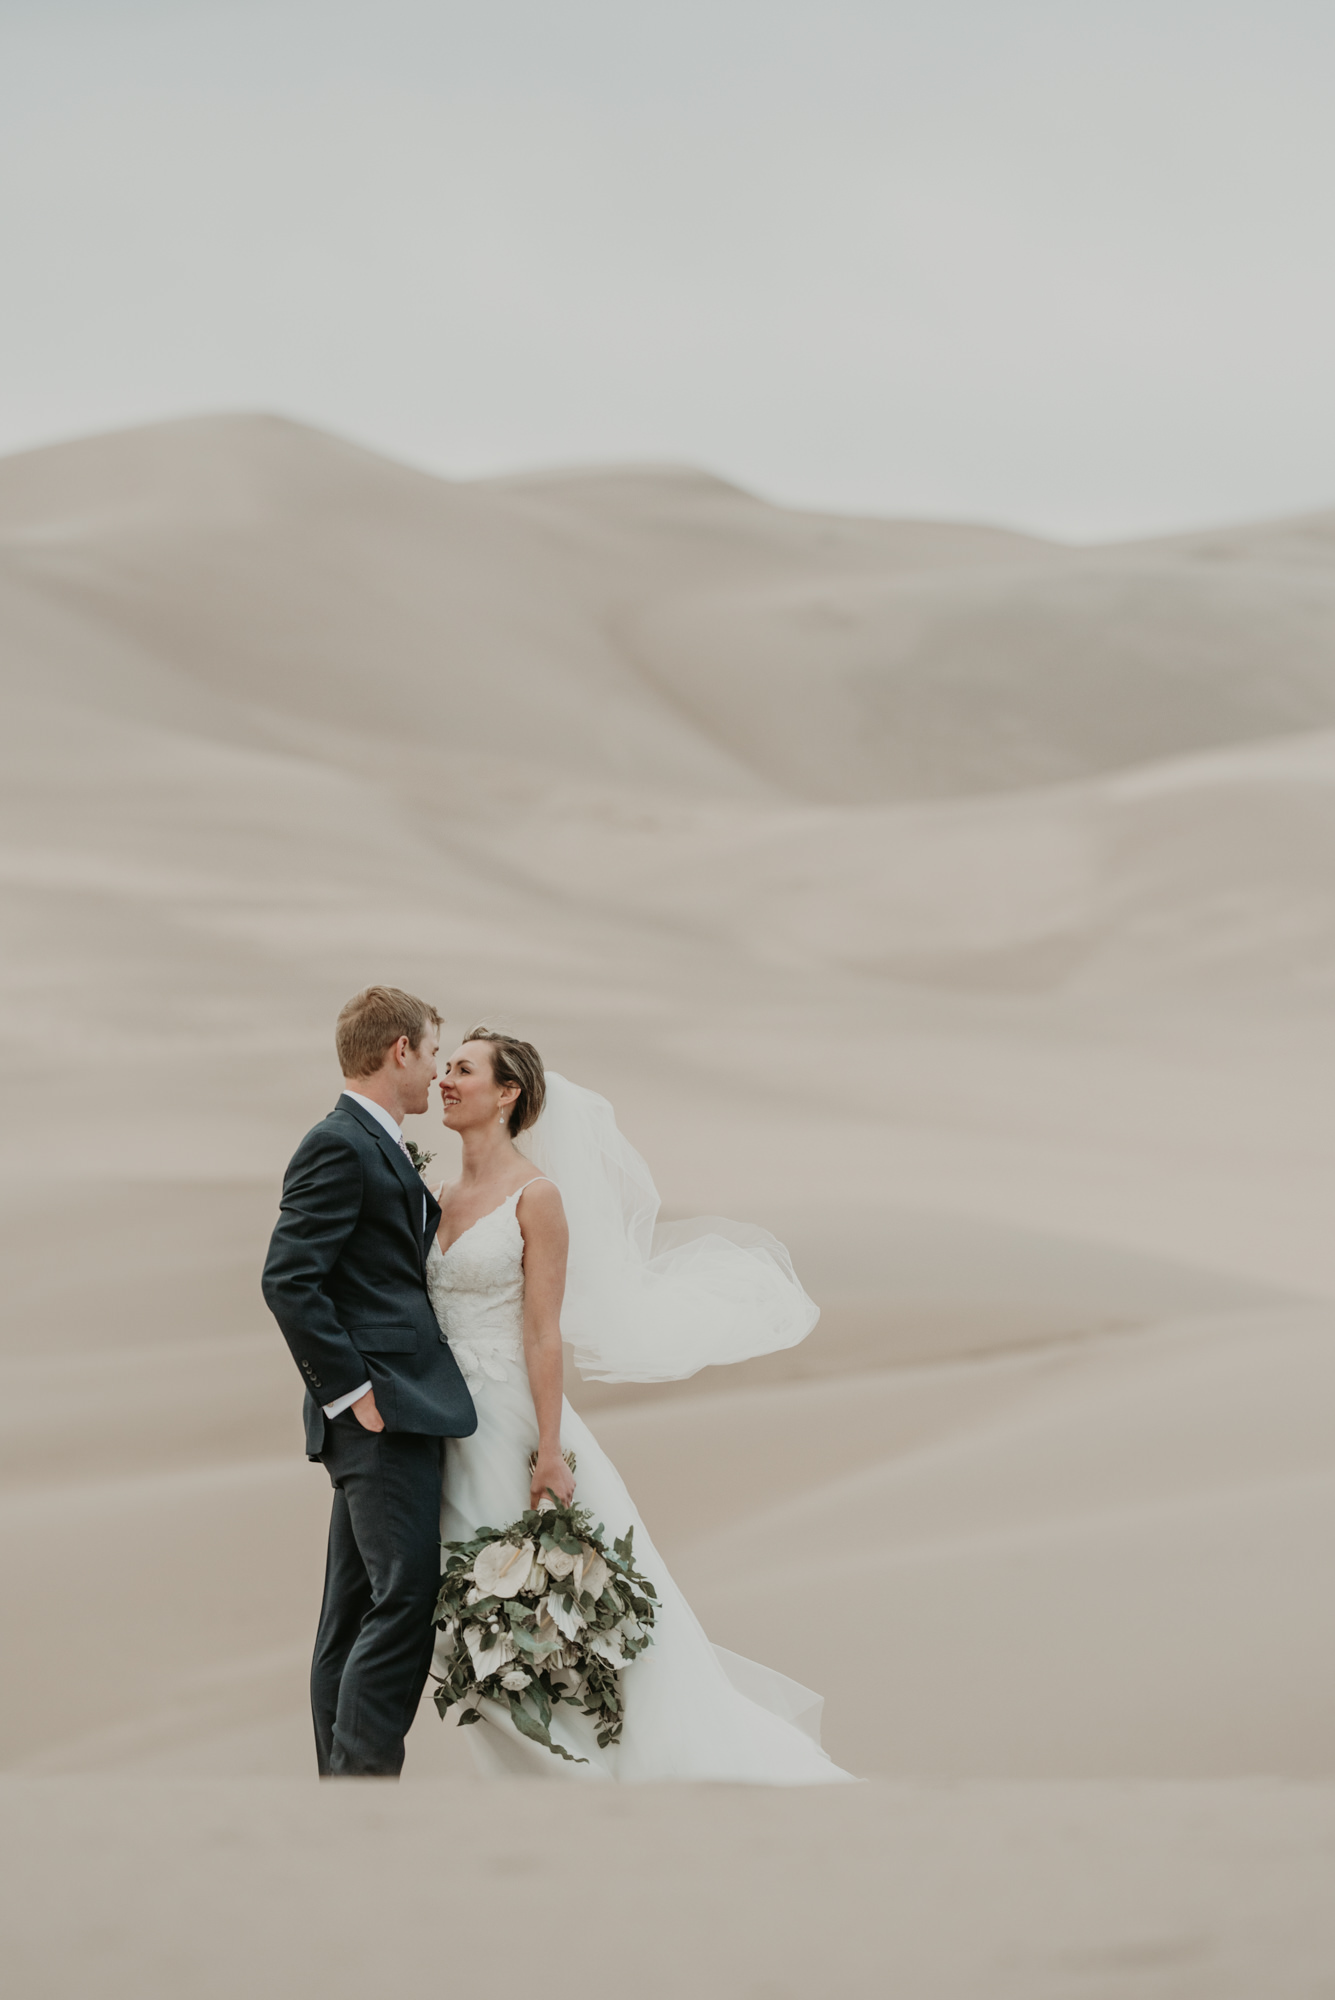 Brittany and Eric share a kiss with the Great Sand Dunes rising up behind them.